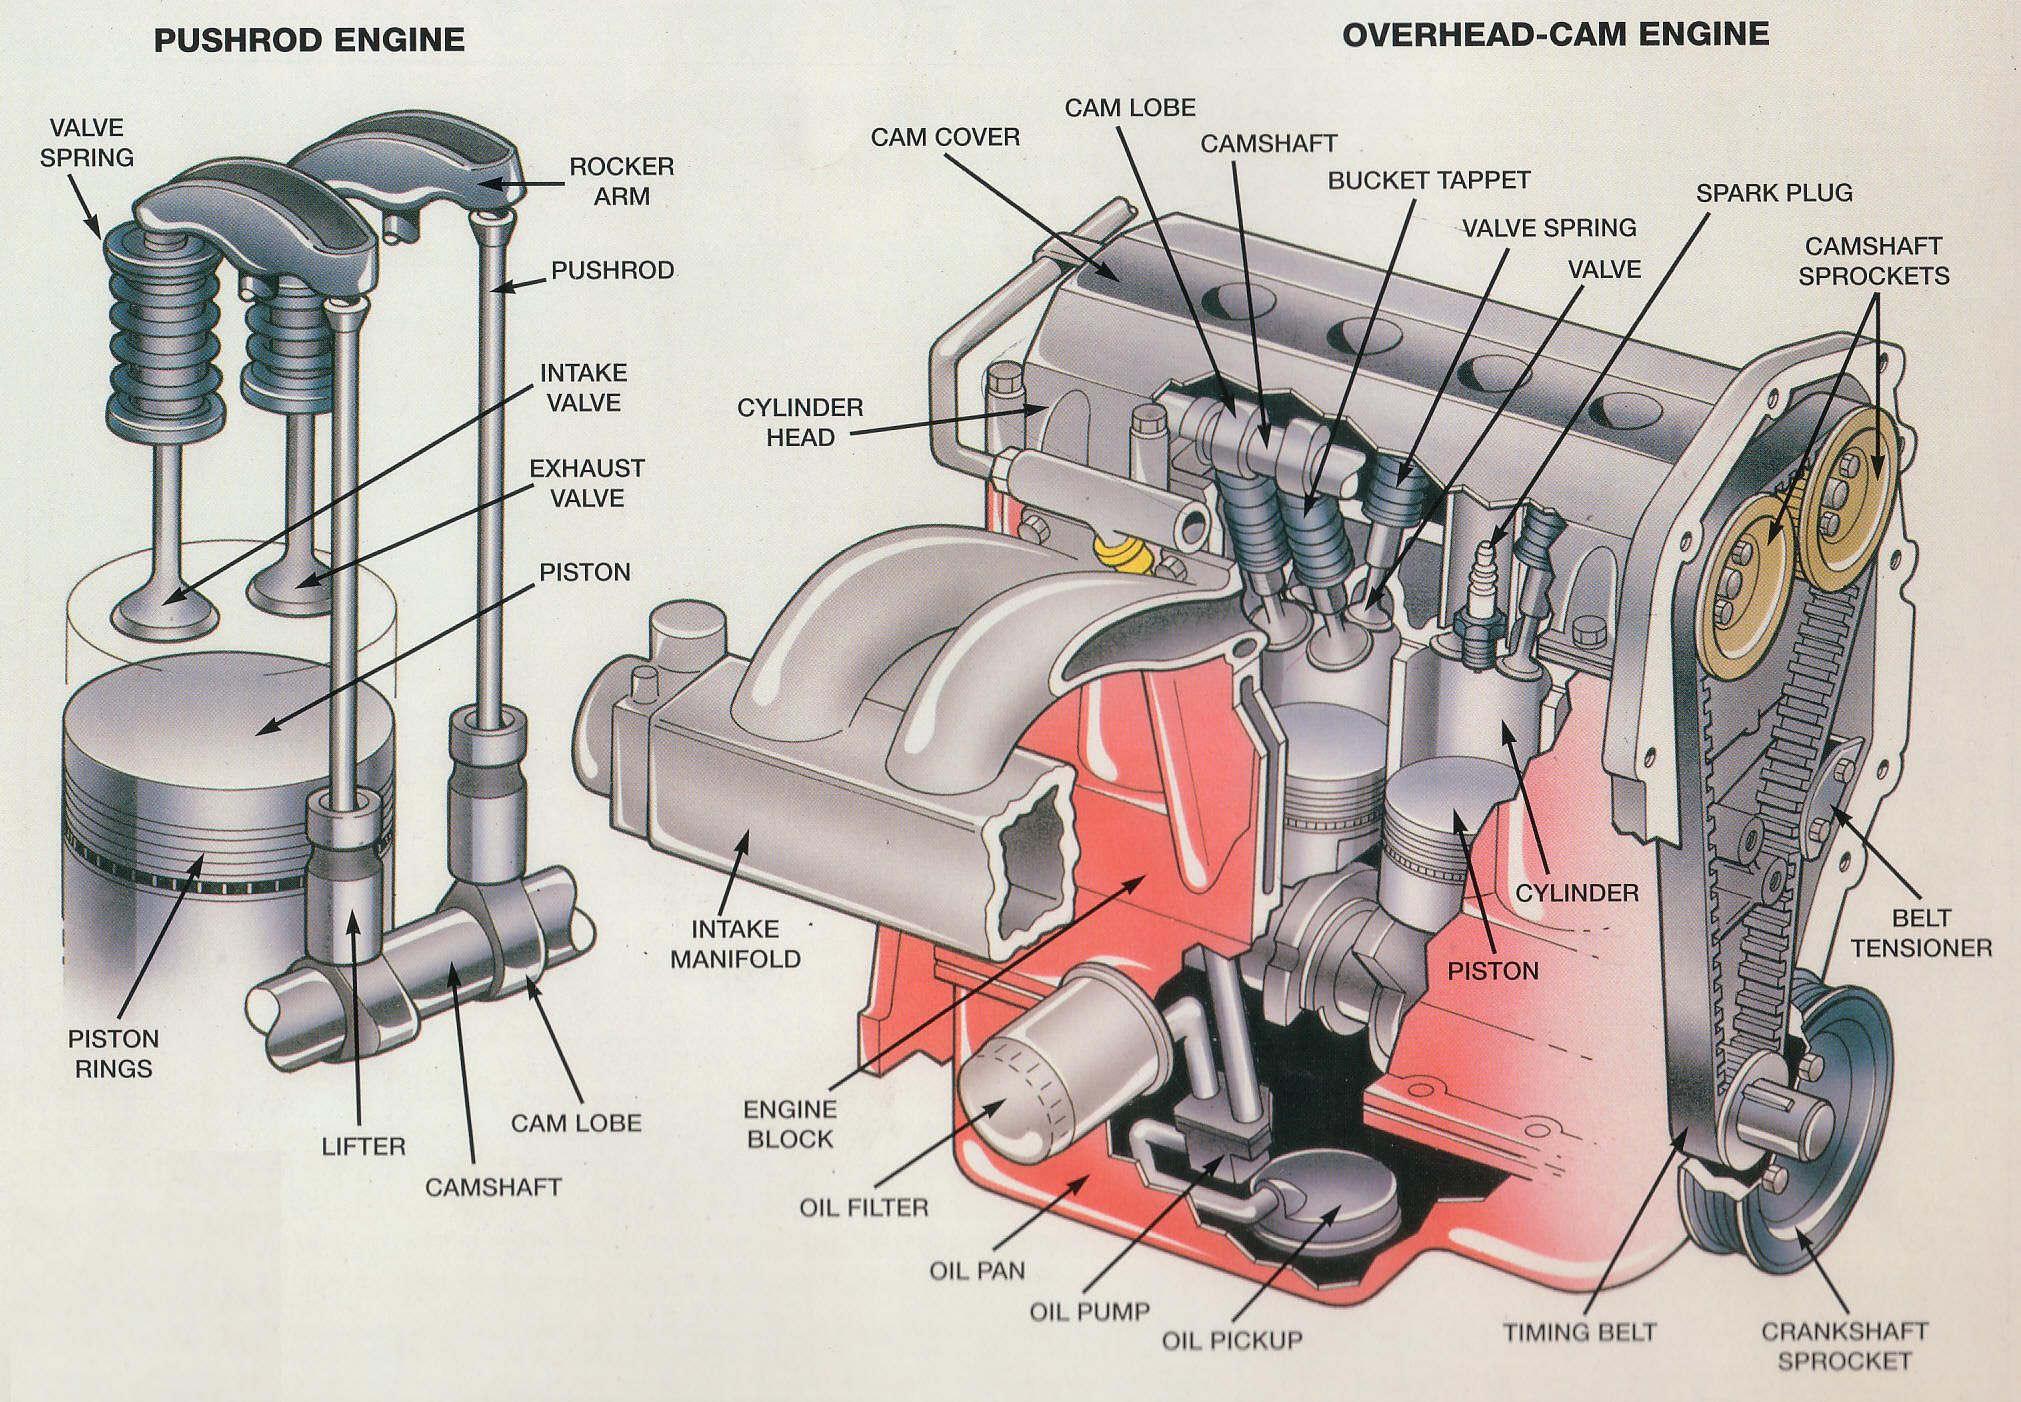 internal bustion engine exploded view  Google Search